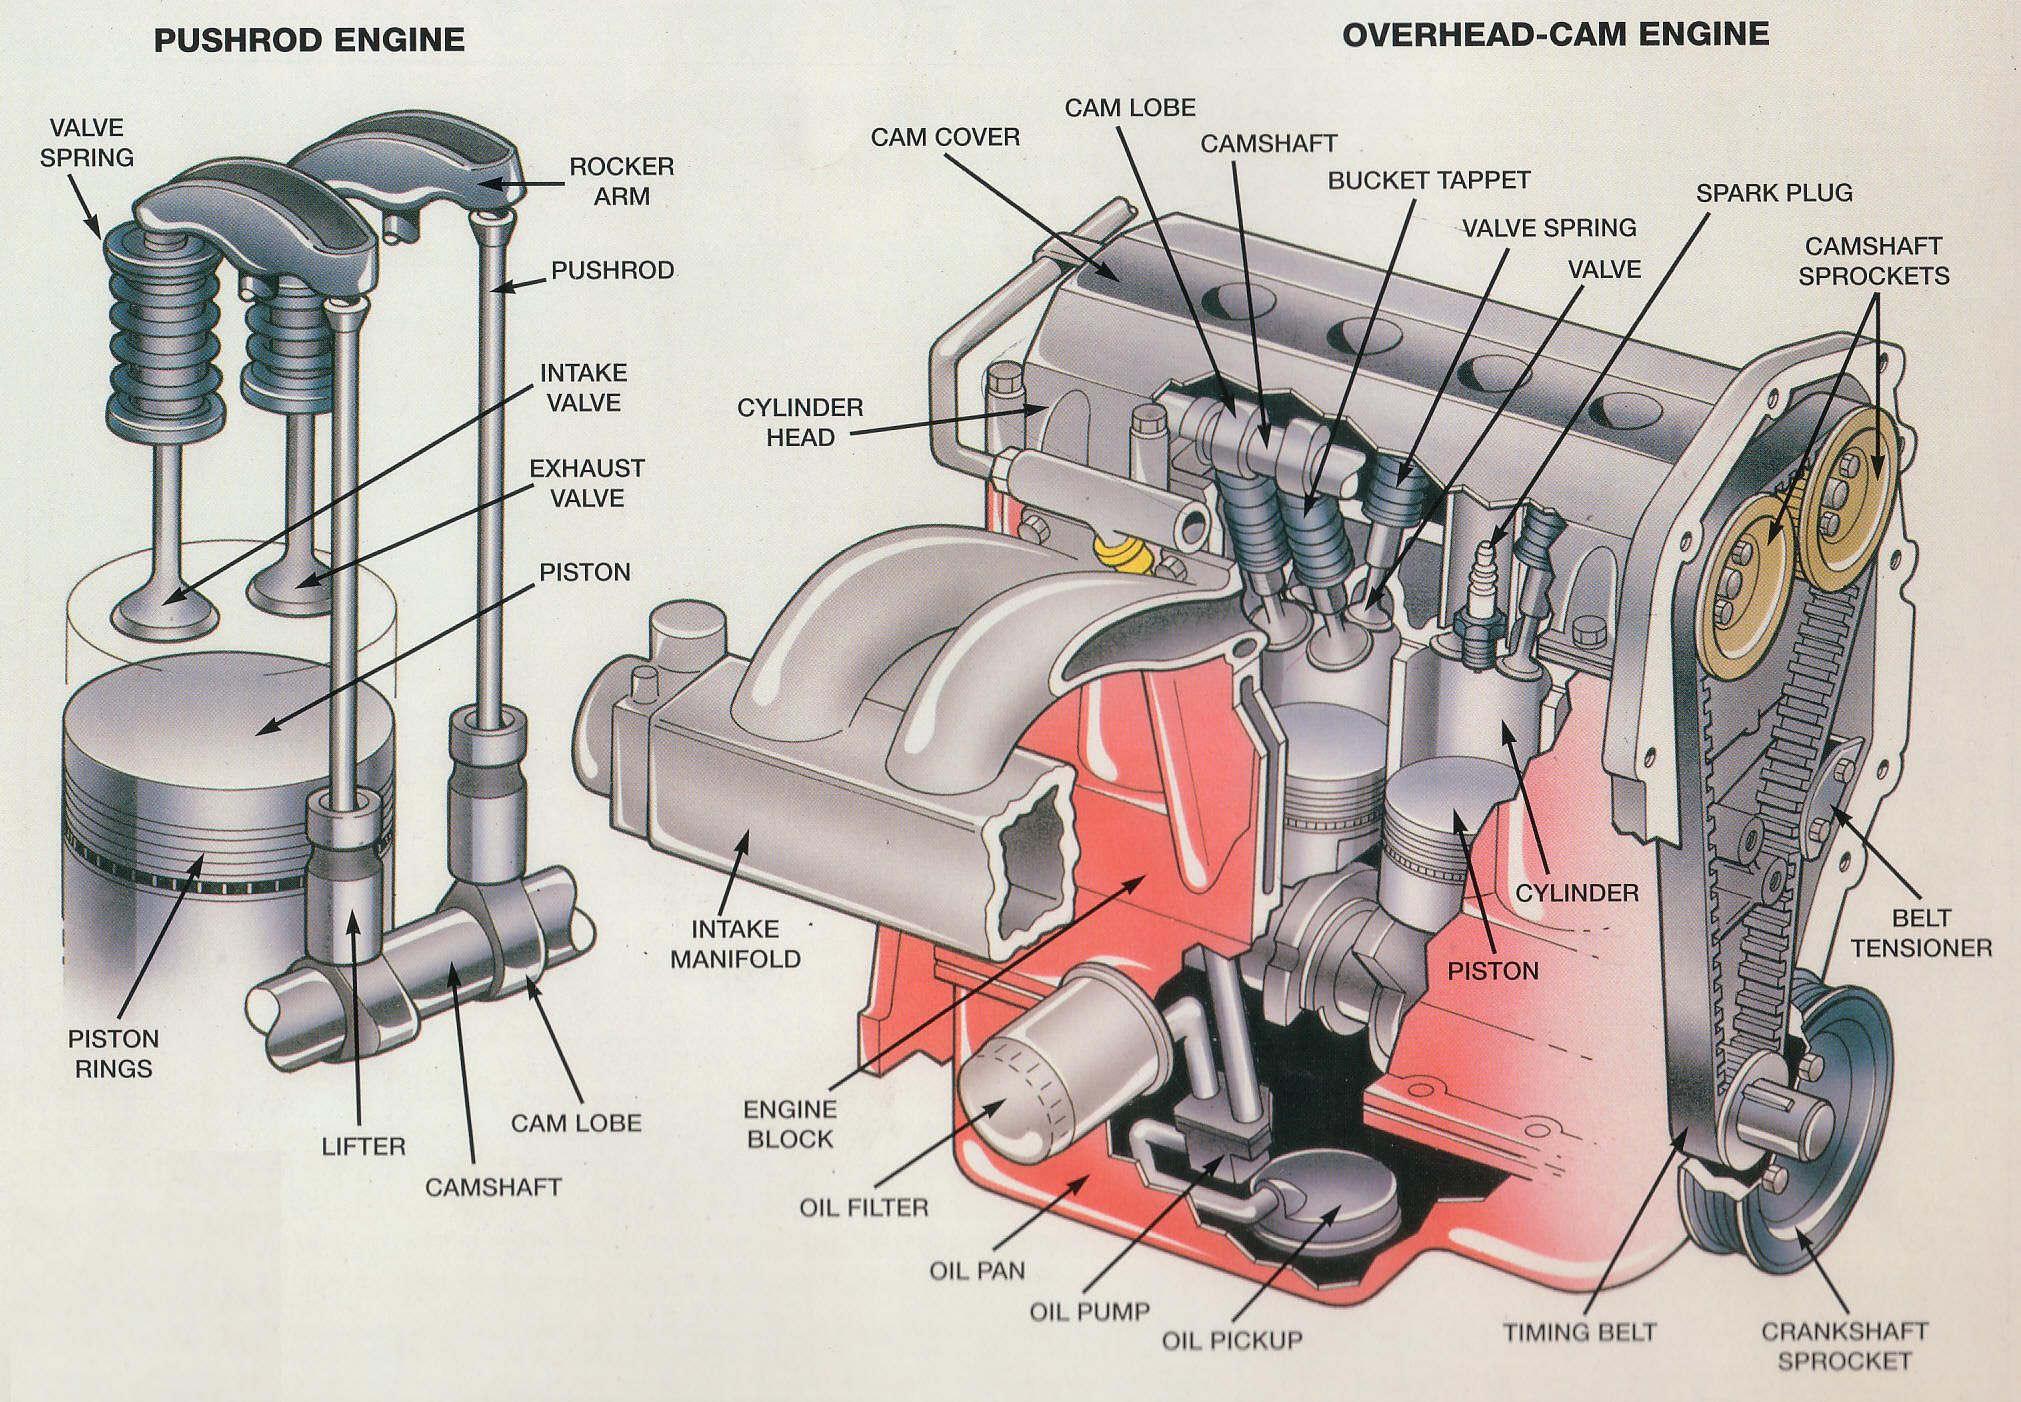 internal bustion engine exploded view  Google Search